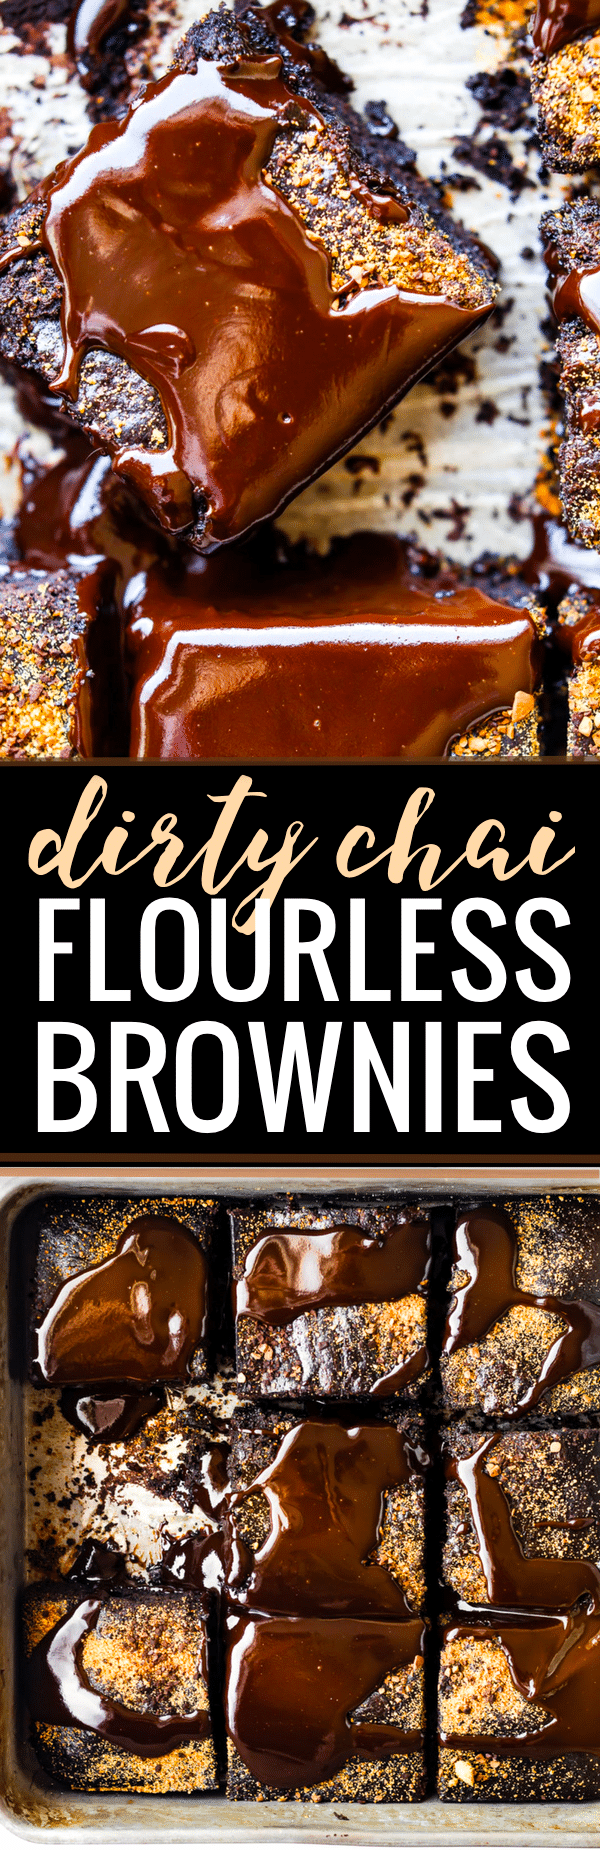 Dirty Chai Dark Chocolate Flourless Brownies may be decadent, but they are easy to make with simple ingredients. No flour needed. A dirty chai tea latte is mixed right in the batter then topped with dark chocolate espresso ganache! Rich, fudgy, chocolatey flourless brownies. Dairy free or paleo friendly! WWW.COTTERCRUNCH.COM